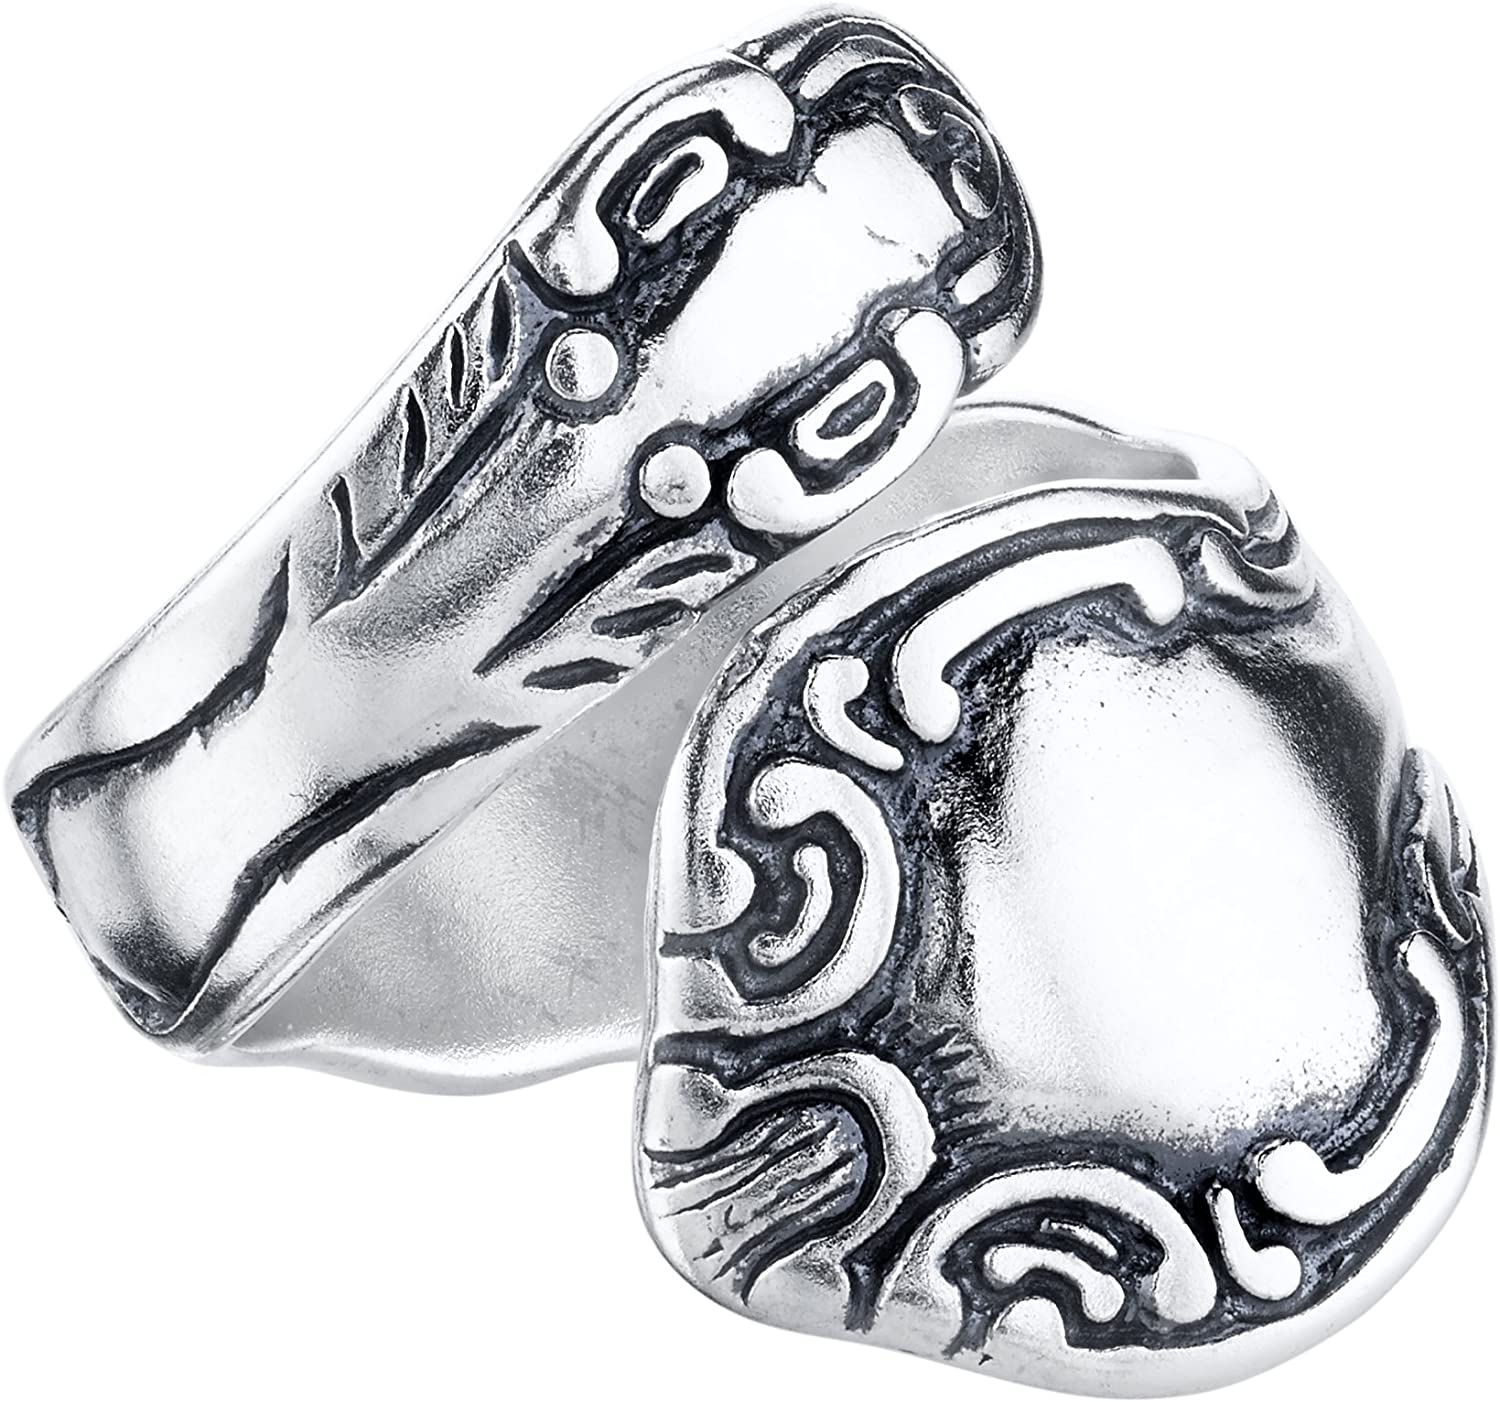 BSE Sterling Silver Swirl Motif Spoon Style Adjustable Ring Sizes 4-9 SE68218-S